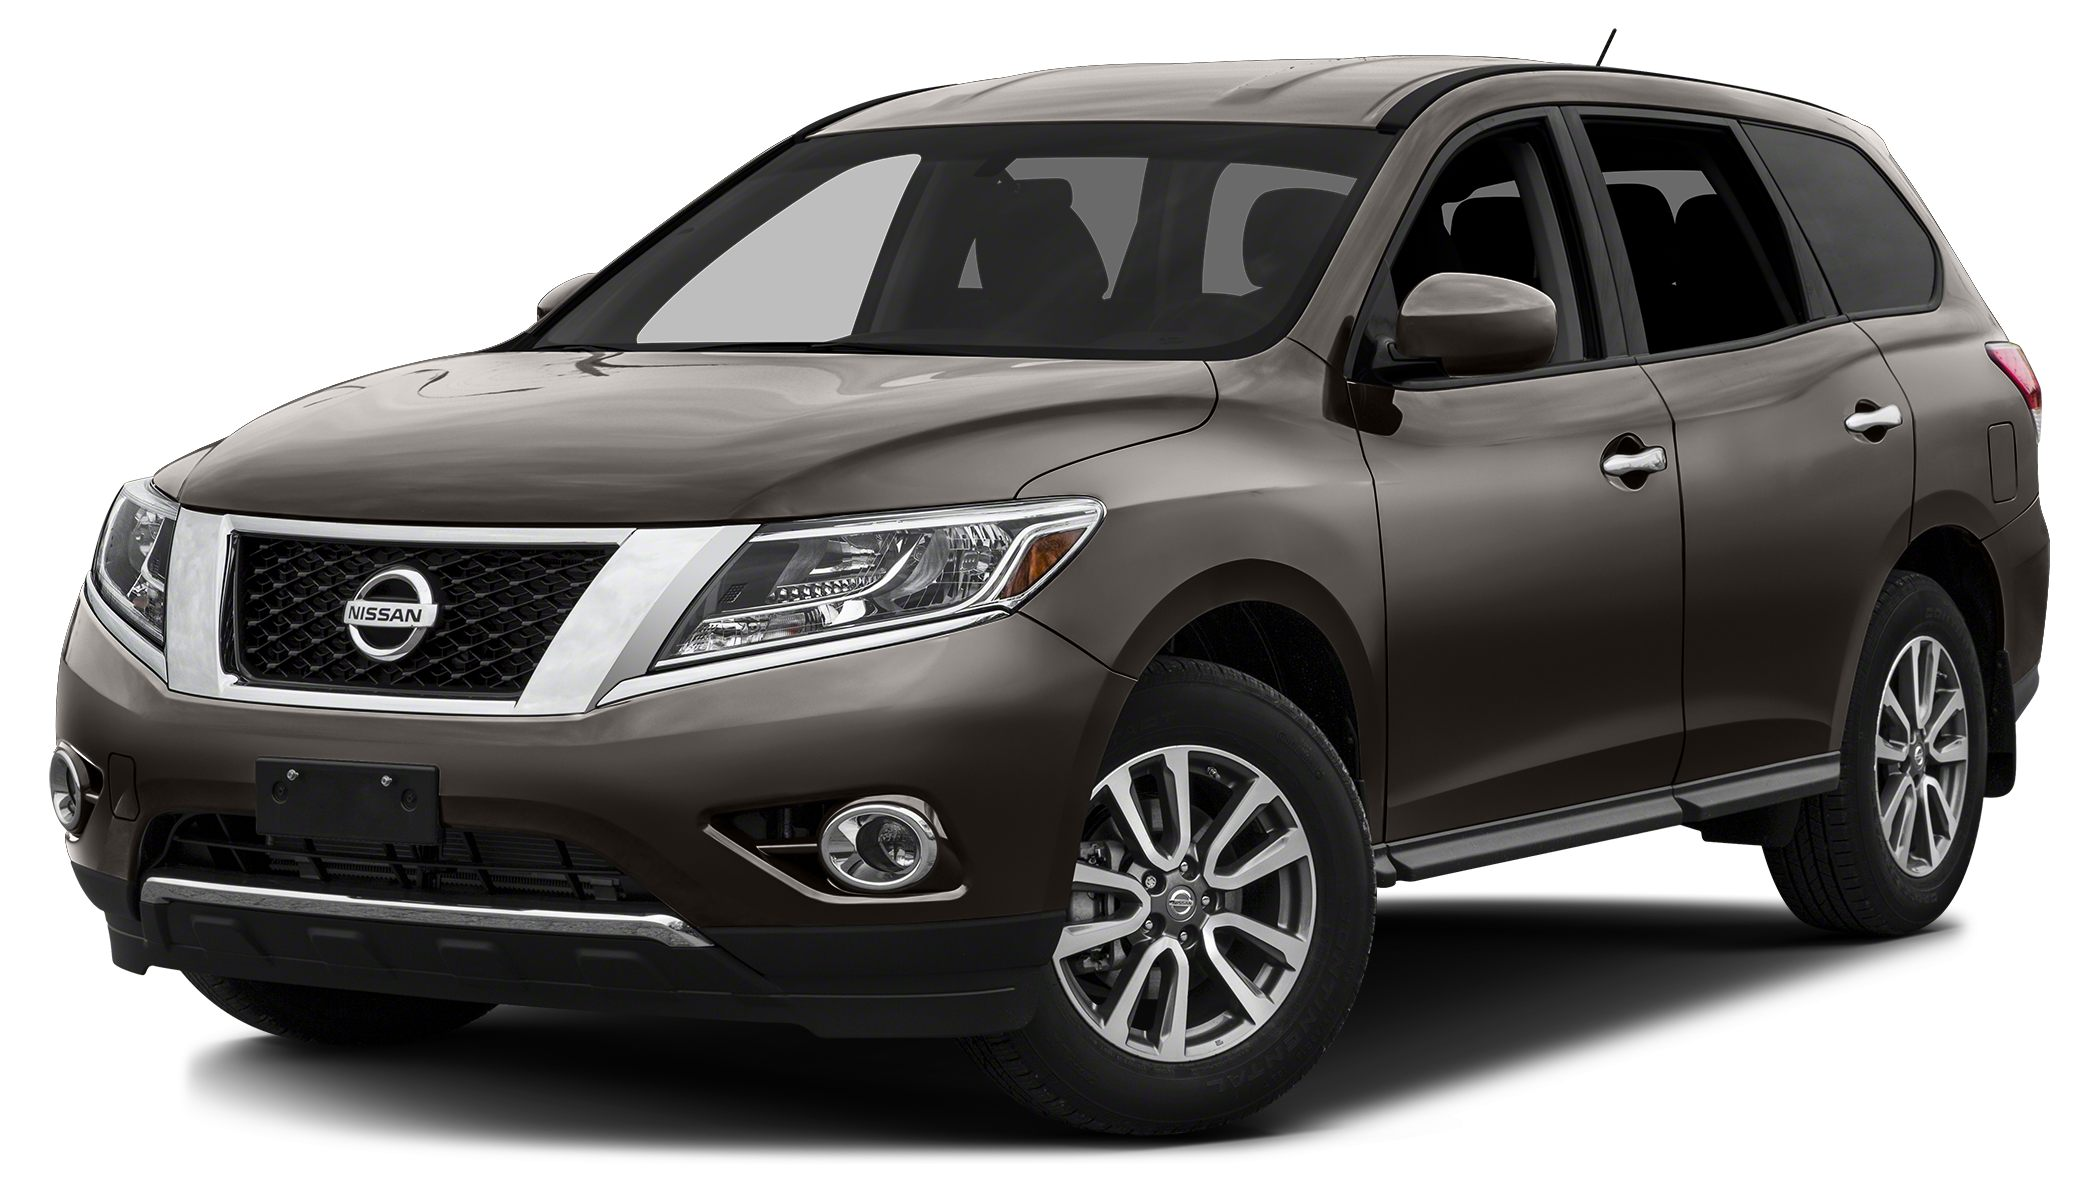 2014 Nissan Pathfinder SL Check out this 2014 Nissan Pathfinder SL It has a Variable transmission